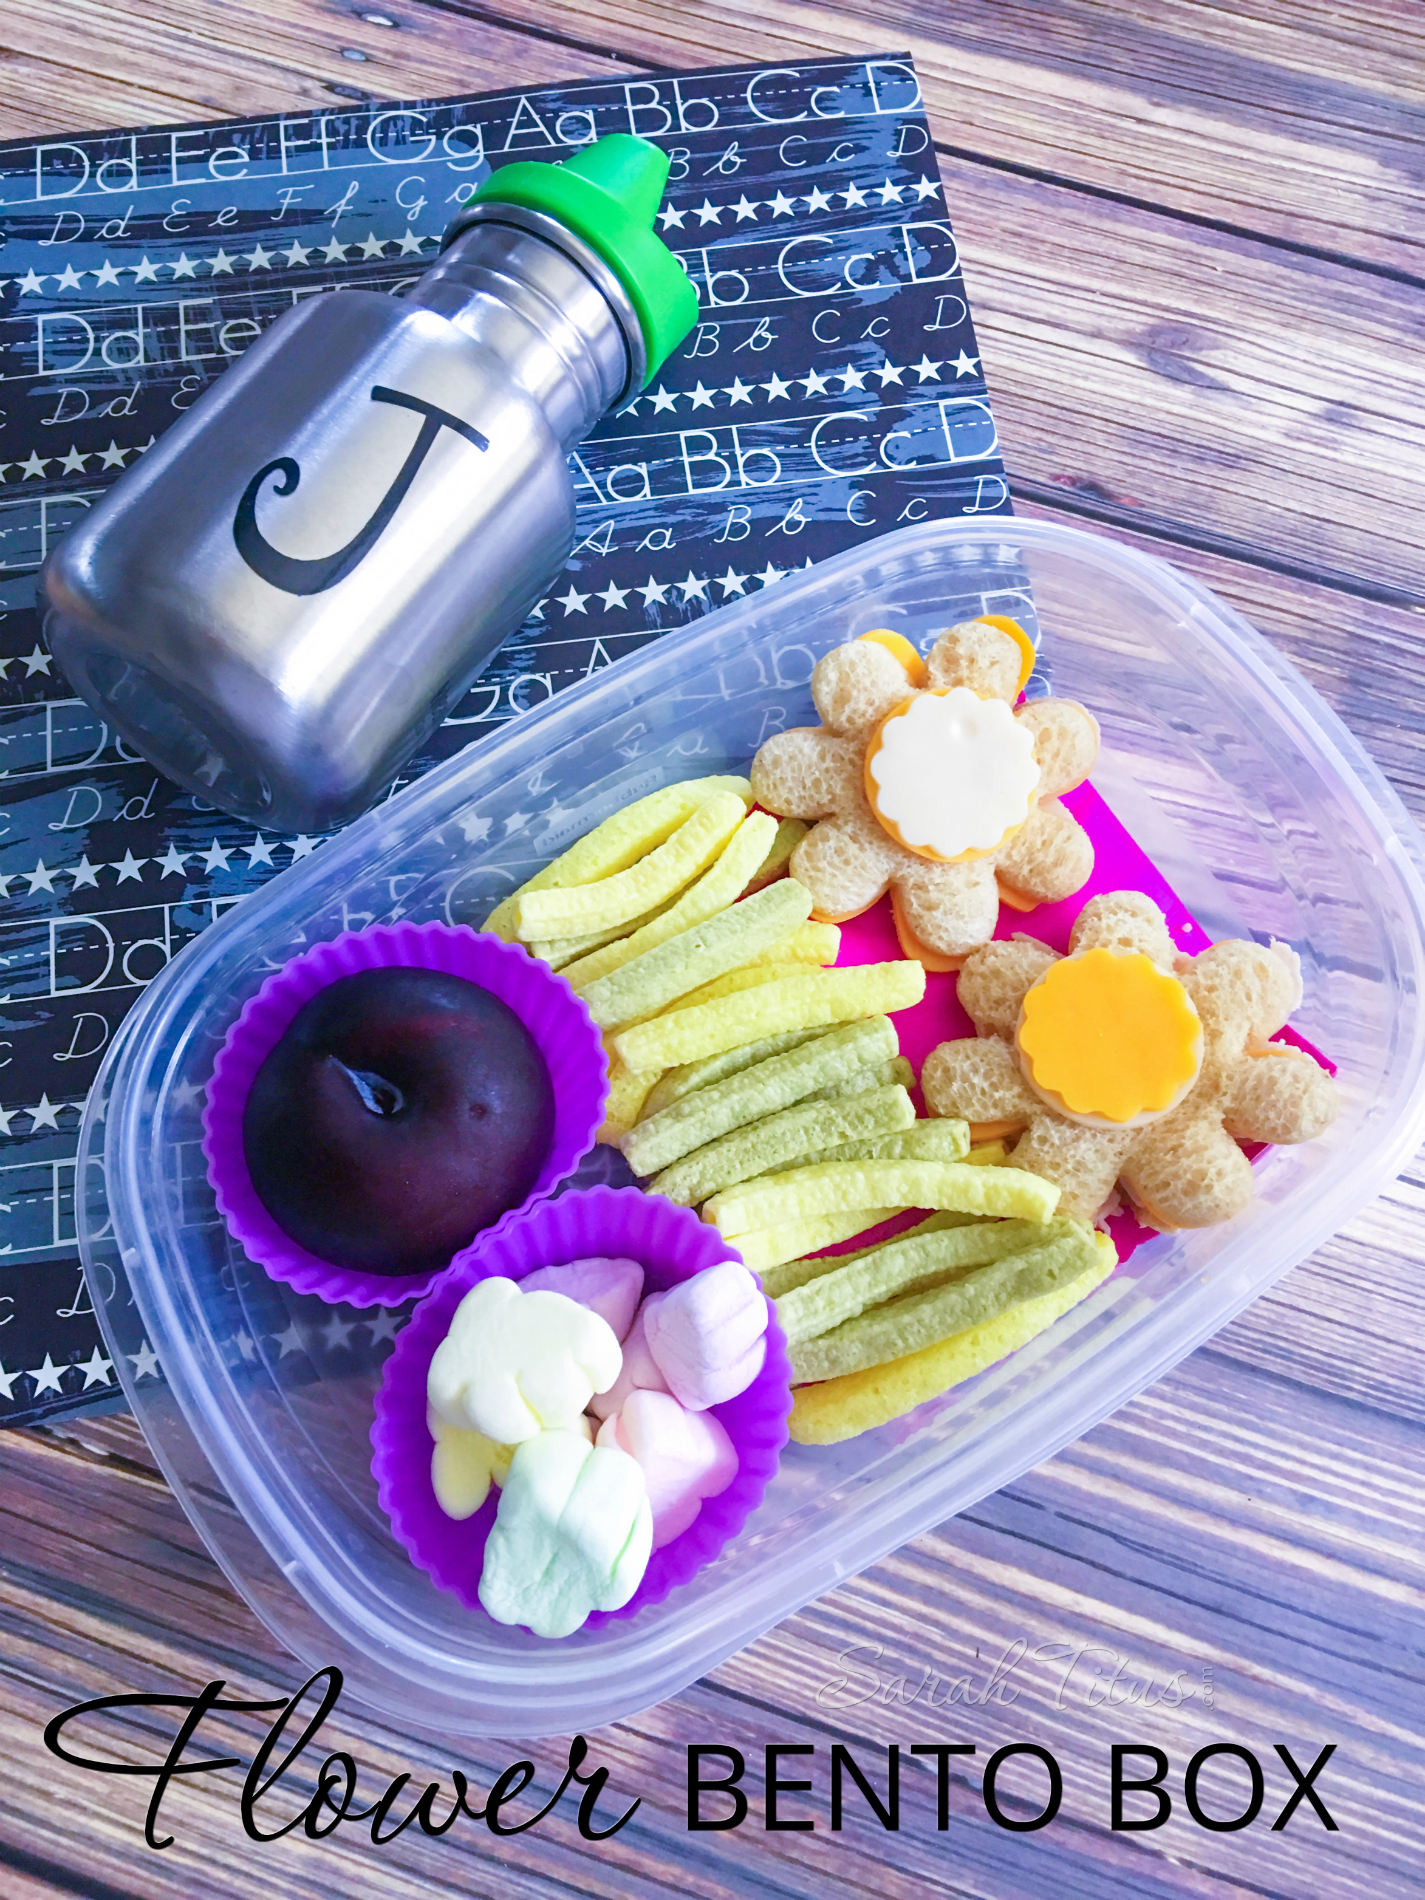 Get ready to make the cutest lunch ever for your kids! This flower bento box is not only healthy, but uber adorable. Your little ones are sure to love it!